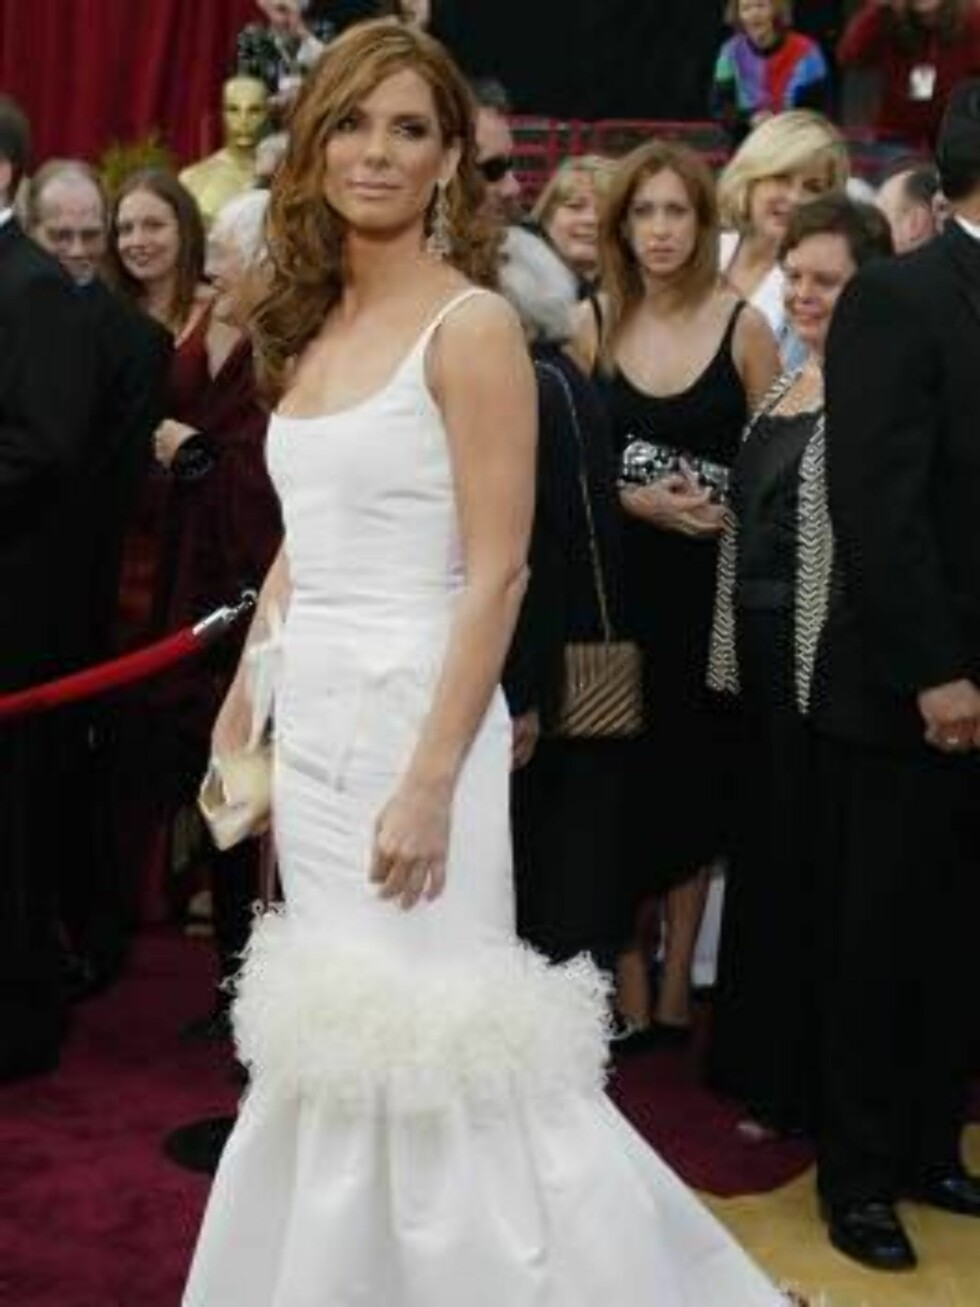 HOLLYWOOD, CA - FEBRUARY 29:  Actress Sandra Bullock attends the 76th Annual Academy Awards at the Kodak Theater on February 29, 2004 in Hollywood, California.  (Photo by Carlo Allegri/Getty Images) / ALL OVER PRESS *** Local Caption *** Sandra Bullock Foto: All Over Press